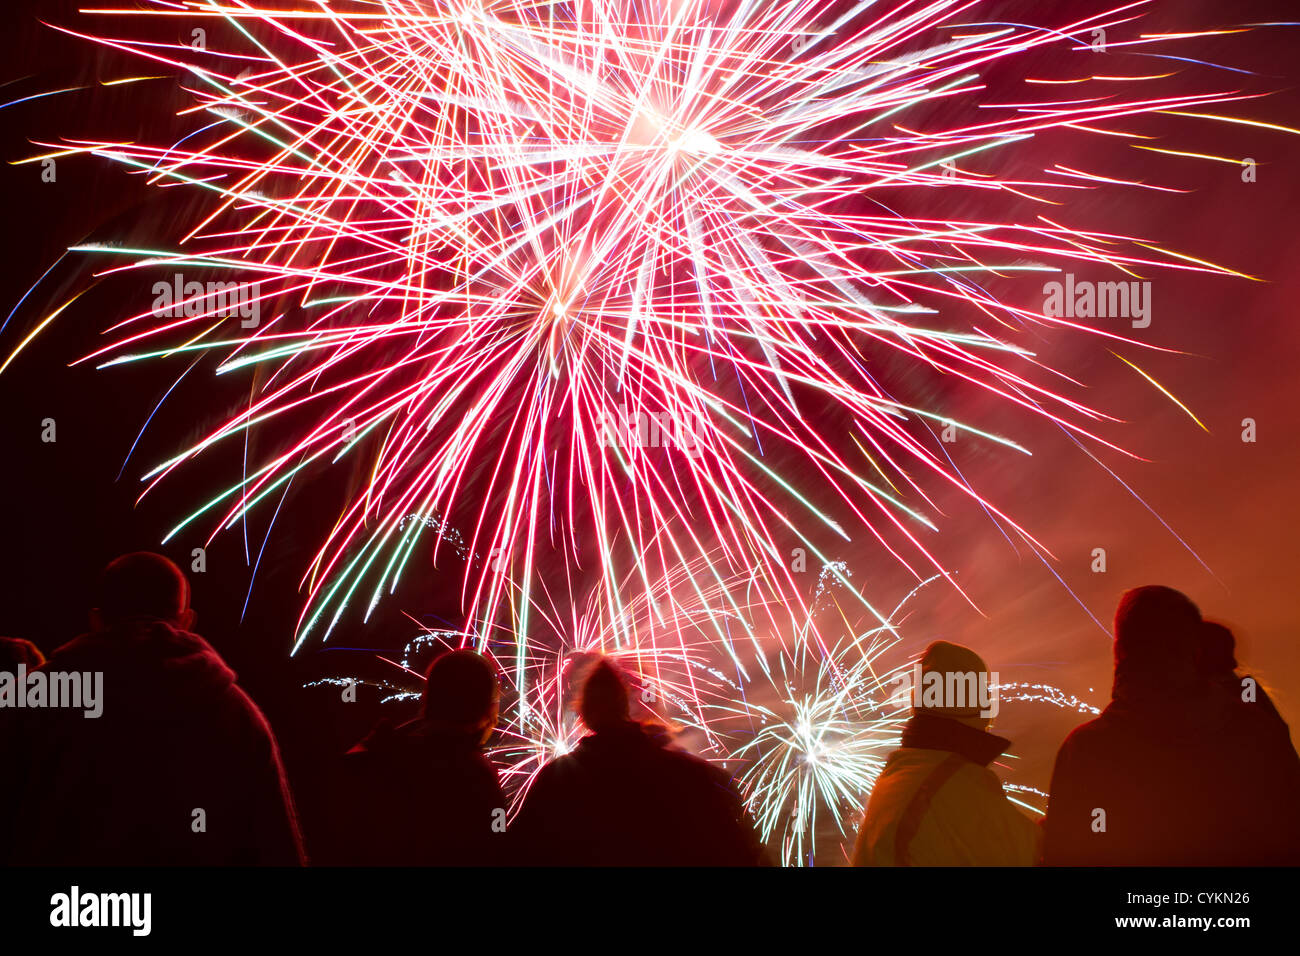 A crowd of people watch a fireworks display - Stock Image